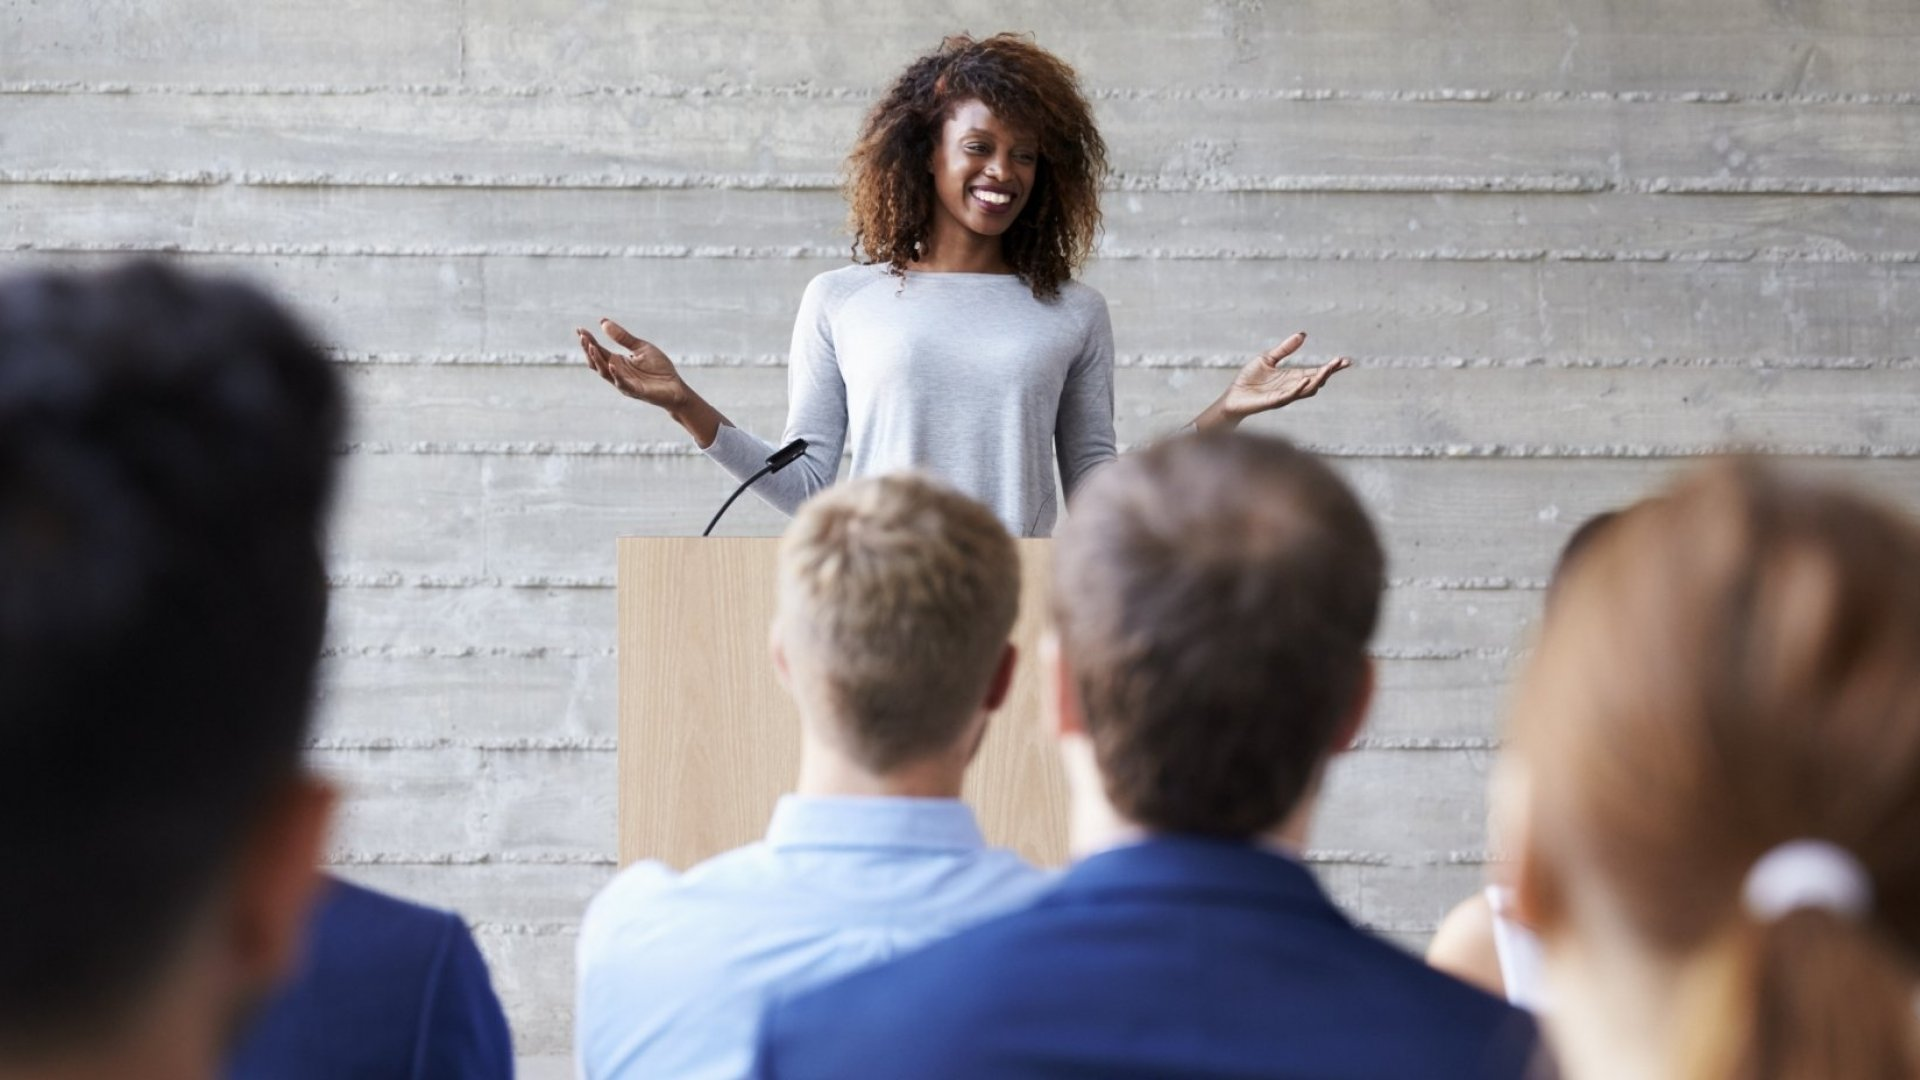 The 8 Key Attributes You Need to Give a Stunning Speech | Inc.com